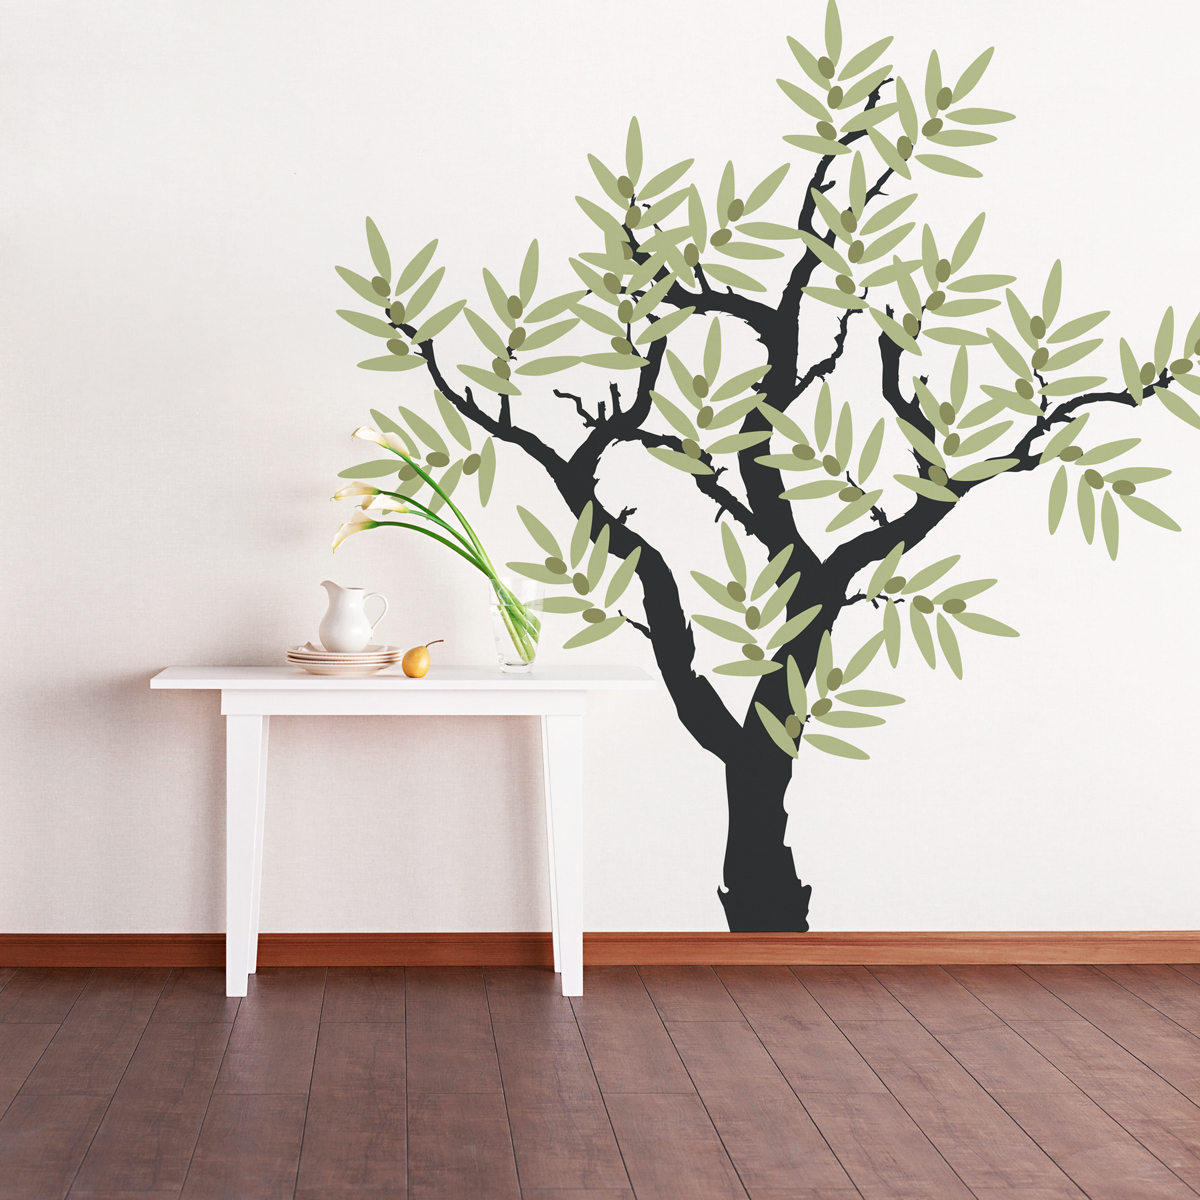 Design Tree Wall Decals olive tree wall decal